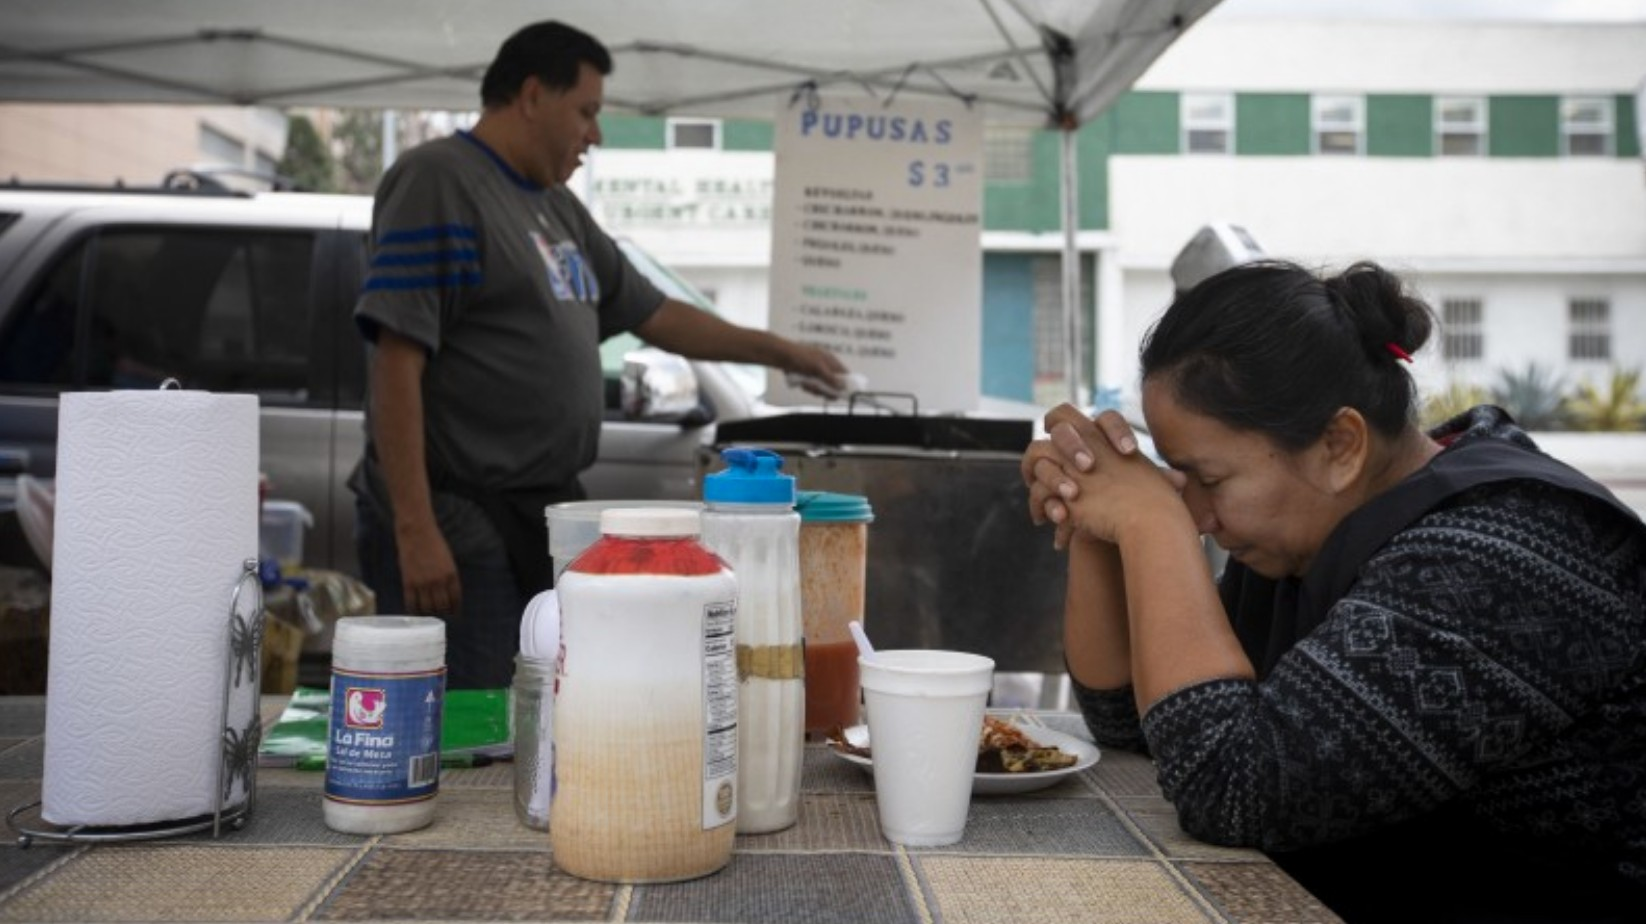 Patricia Escobar prays before having her lunch she bought from a vendor outside County-USC Medical Center on March 17, 2020. (Francine Orr/Los Angeles Times)